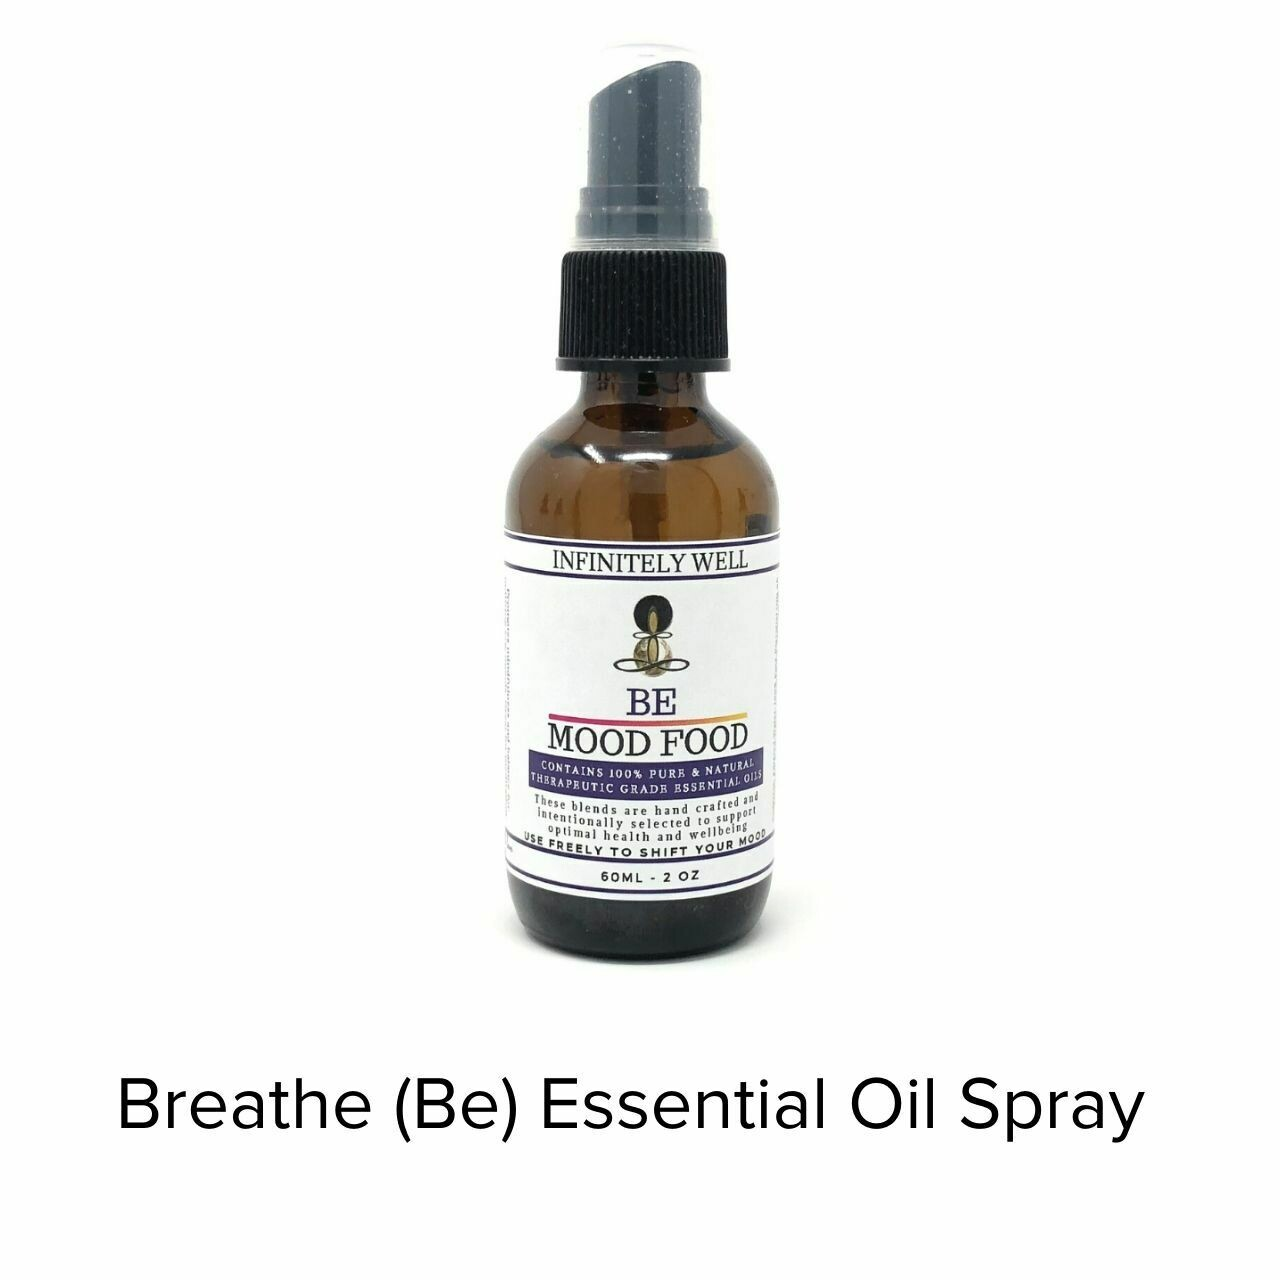 Infinitely Well Breathe Spray